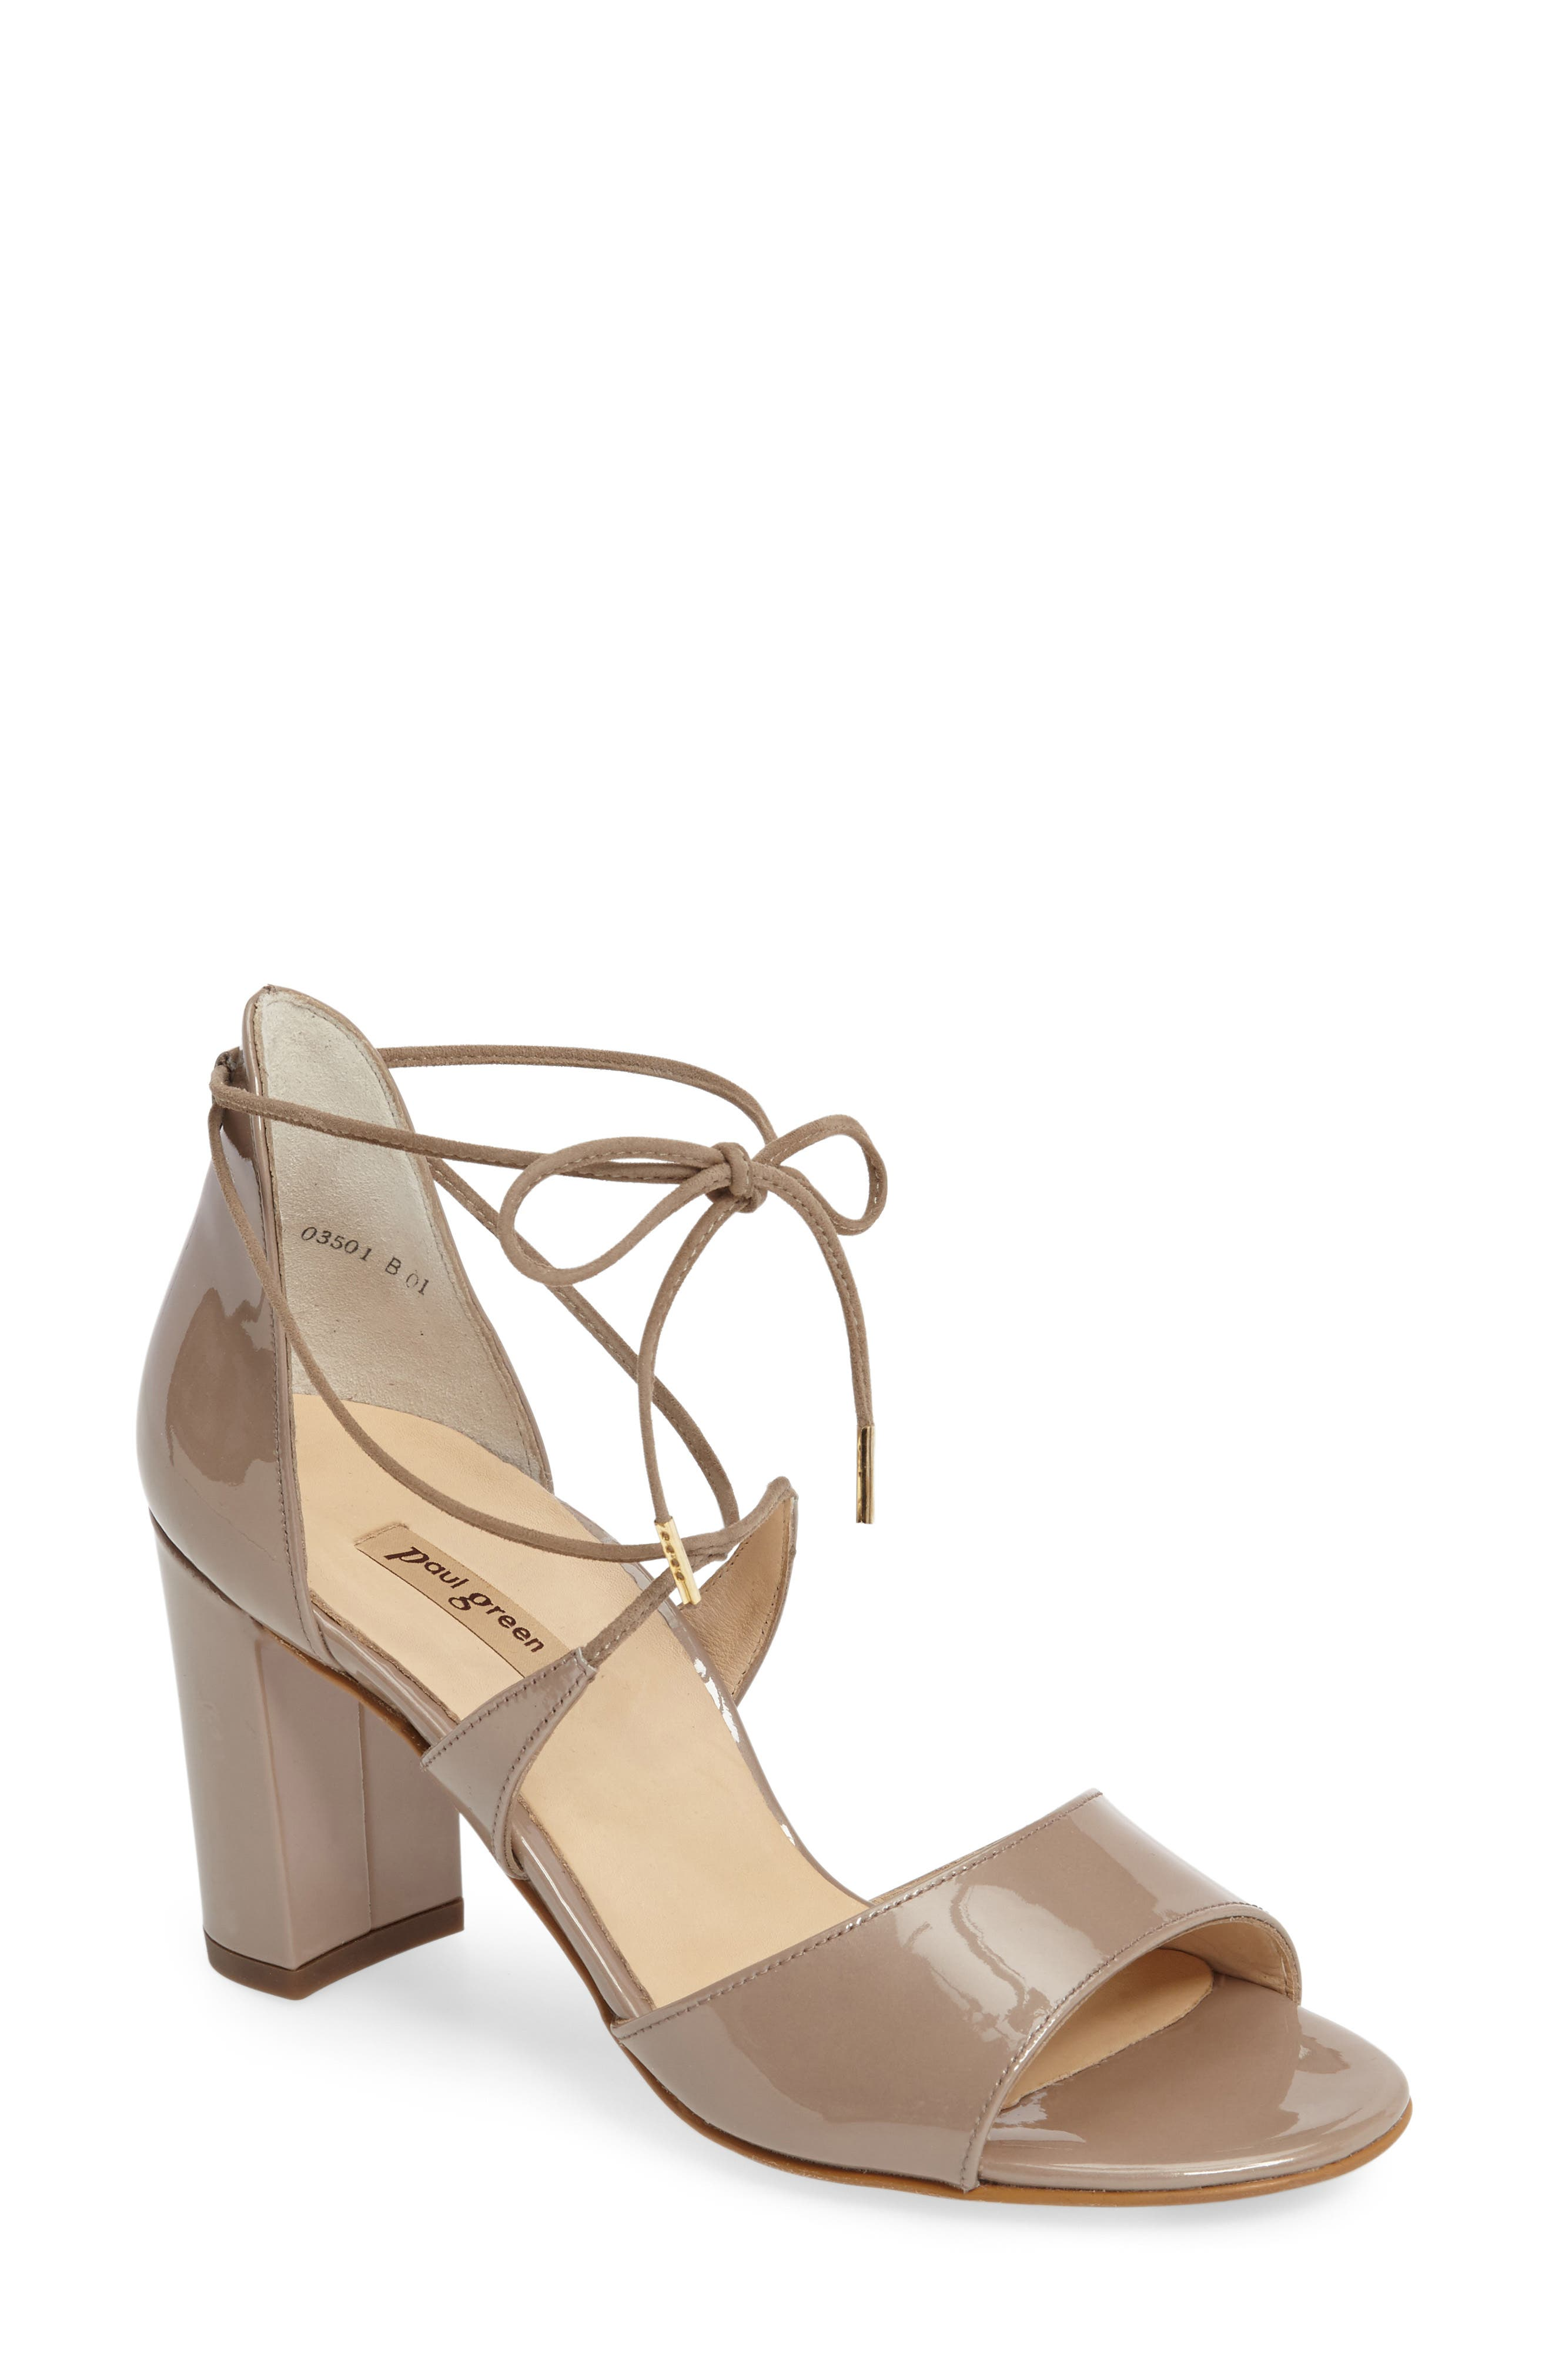 PAUL GREEN Nadia Ankle Strap Sandal